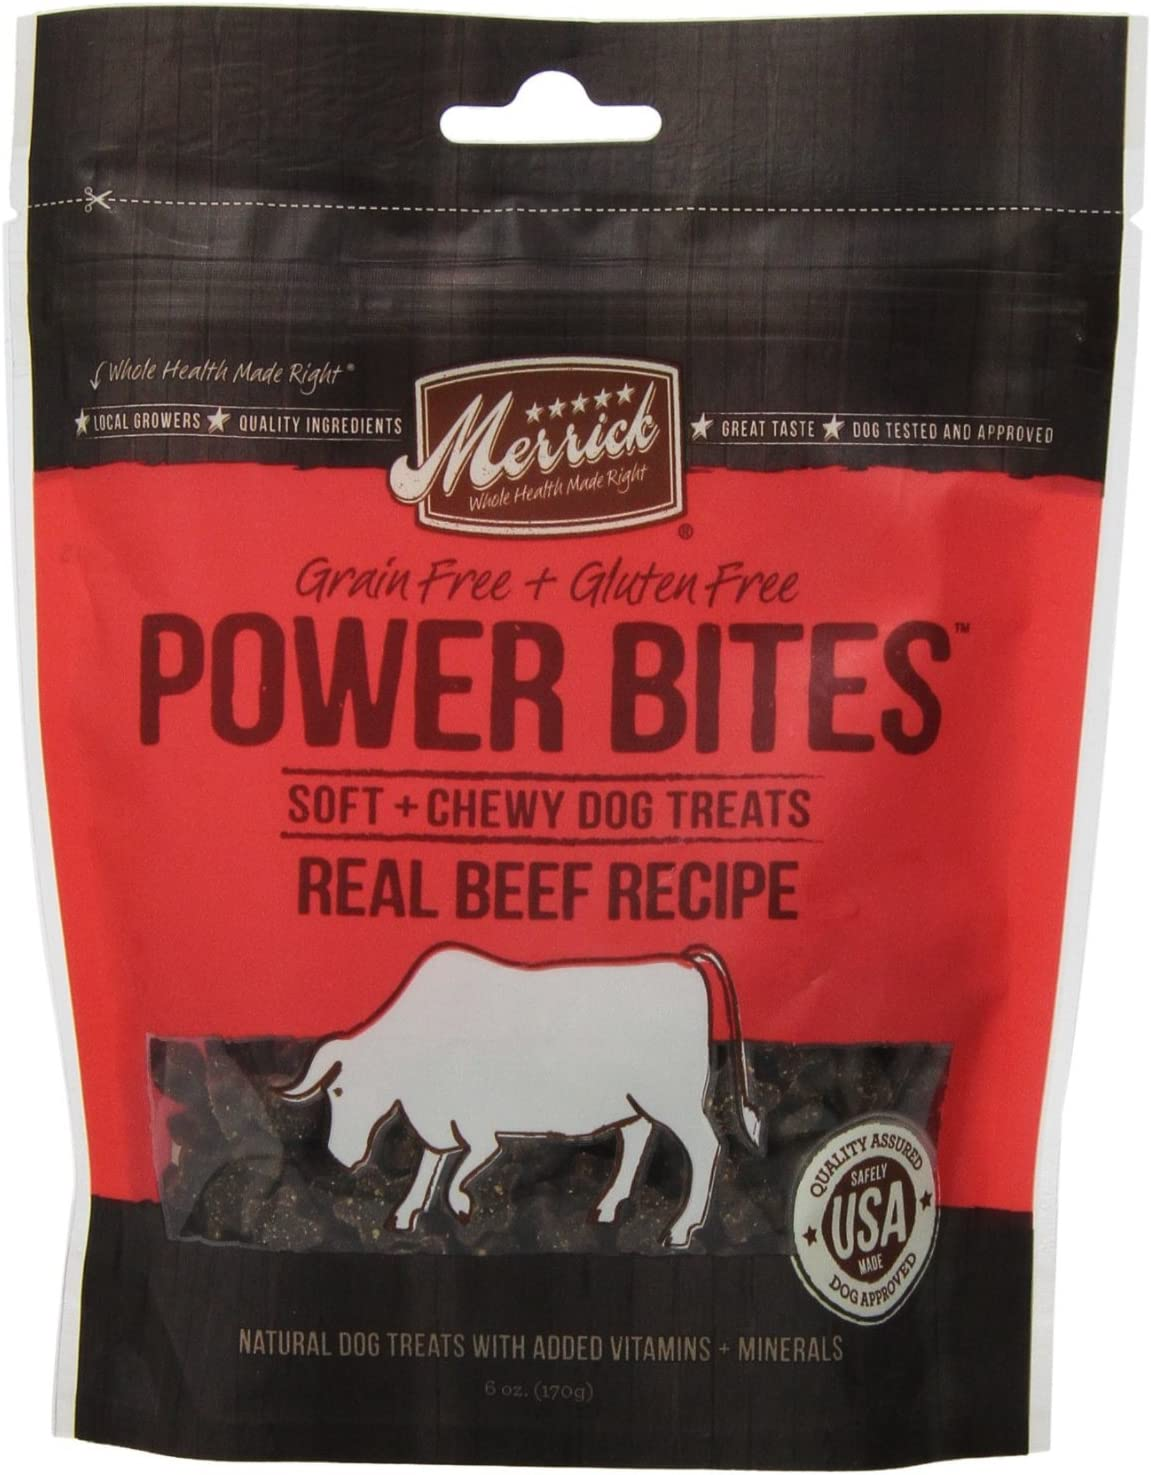 Merrick Power Bites Real Max 41% OFF Texas Beef Recipe Sales for sale 2 PACK Treats 6oz